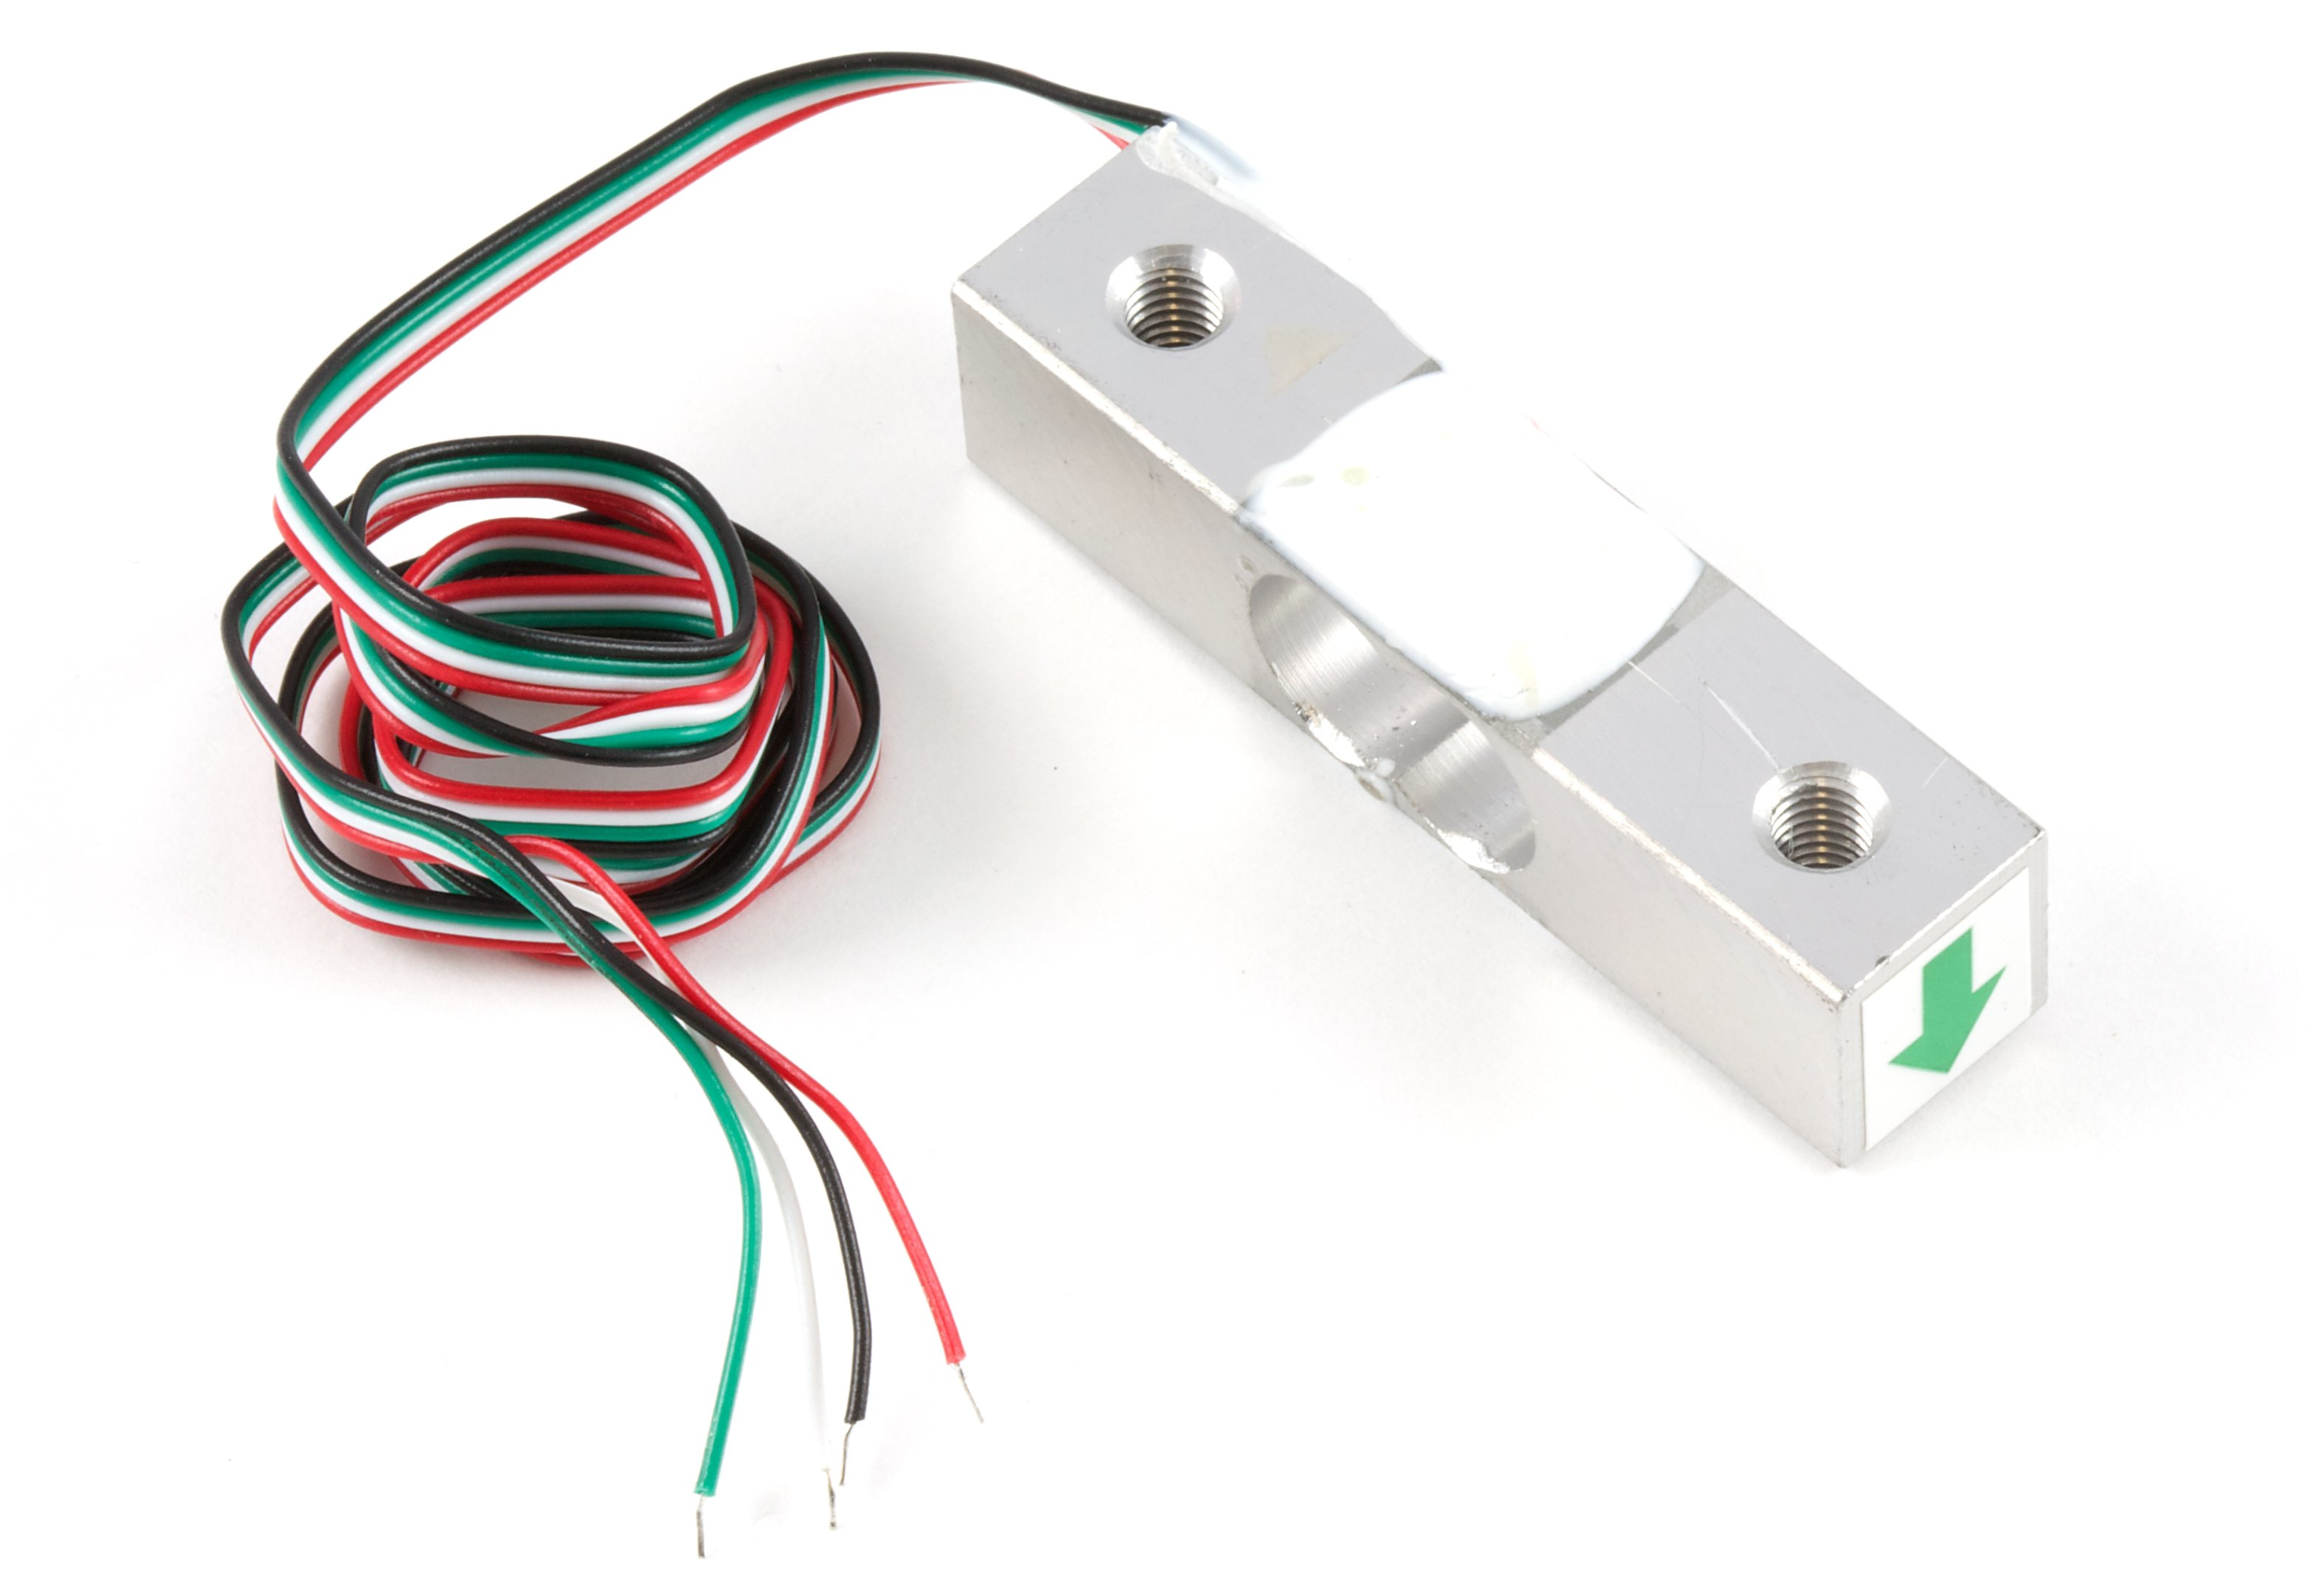 Micro Load Cell (0-5kg) - CZL635 - 3133_0 at Phidgets on